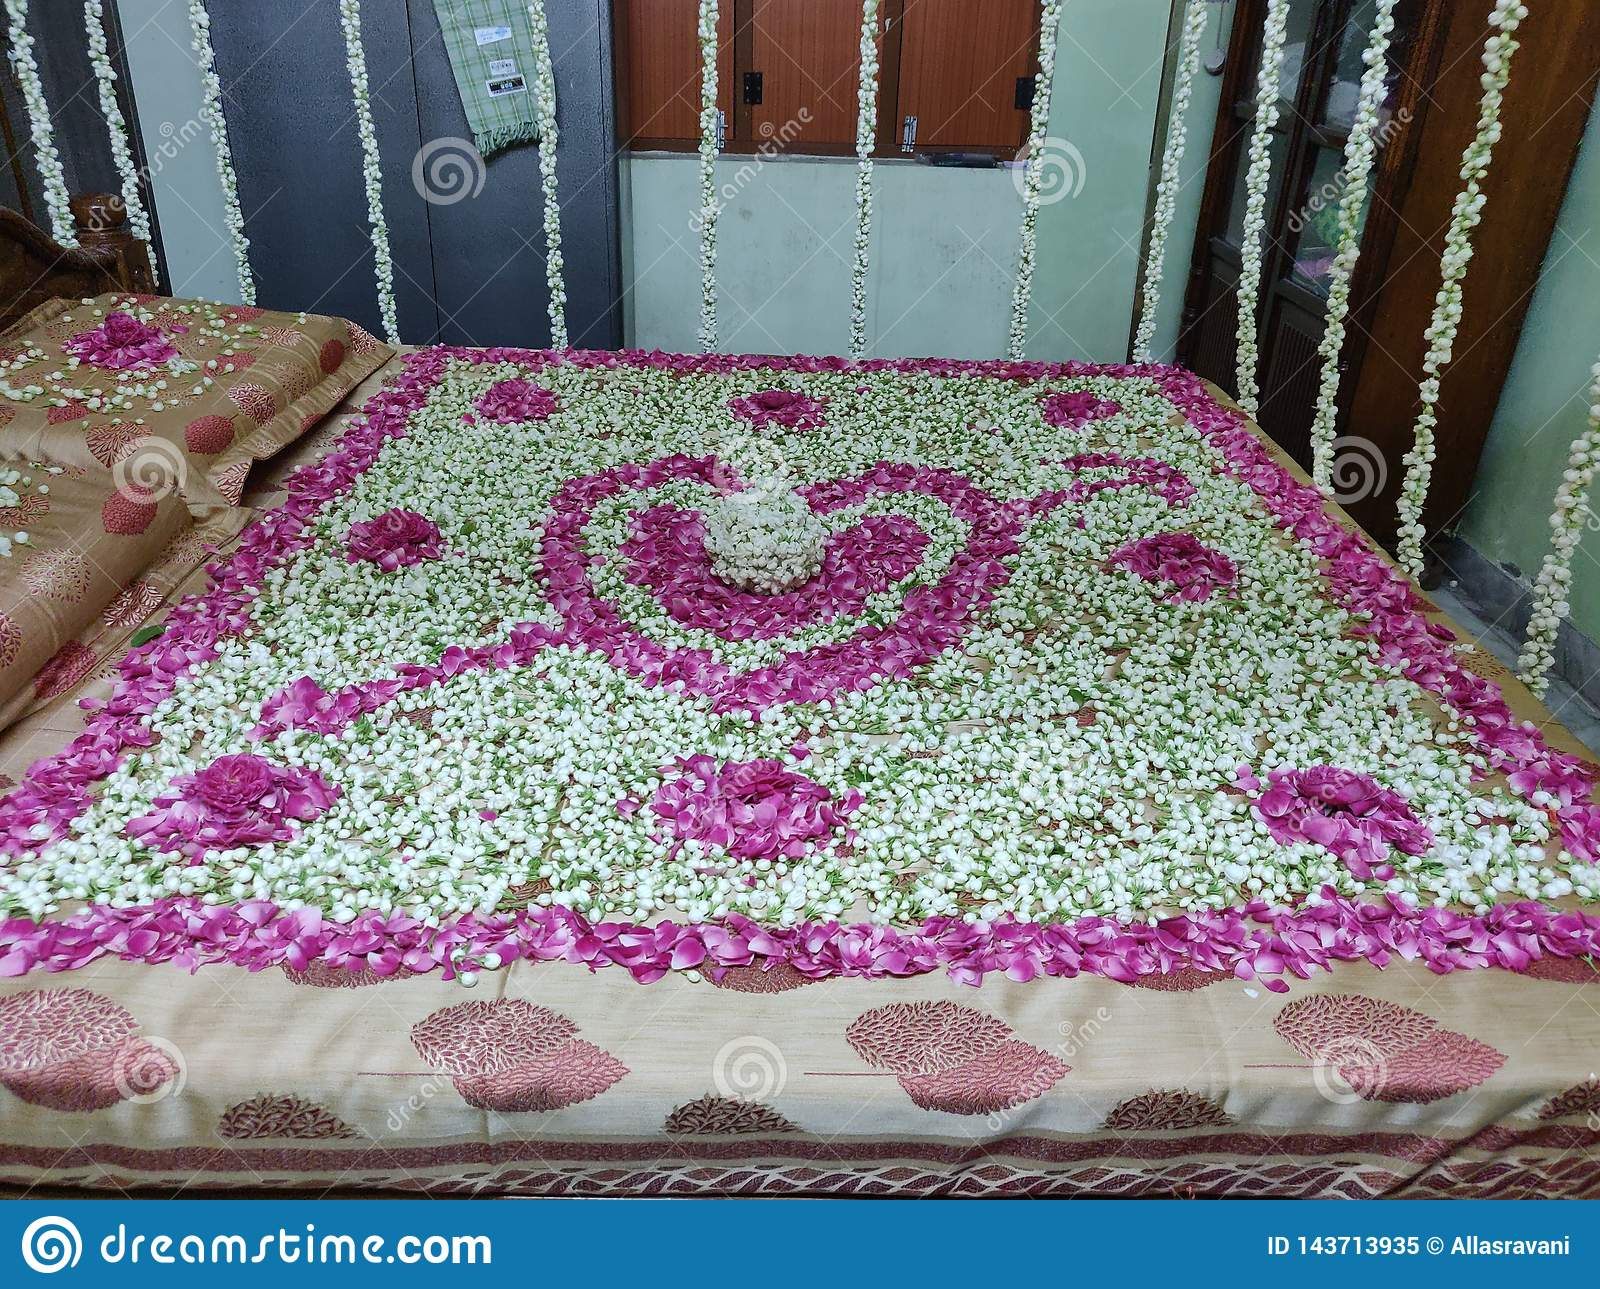 First Night Romantic Bed With Flowers Stock Image Image Of Beautiful Flower 143713935